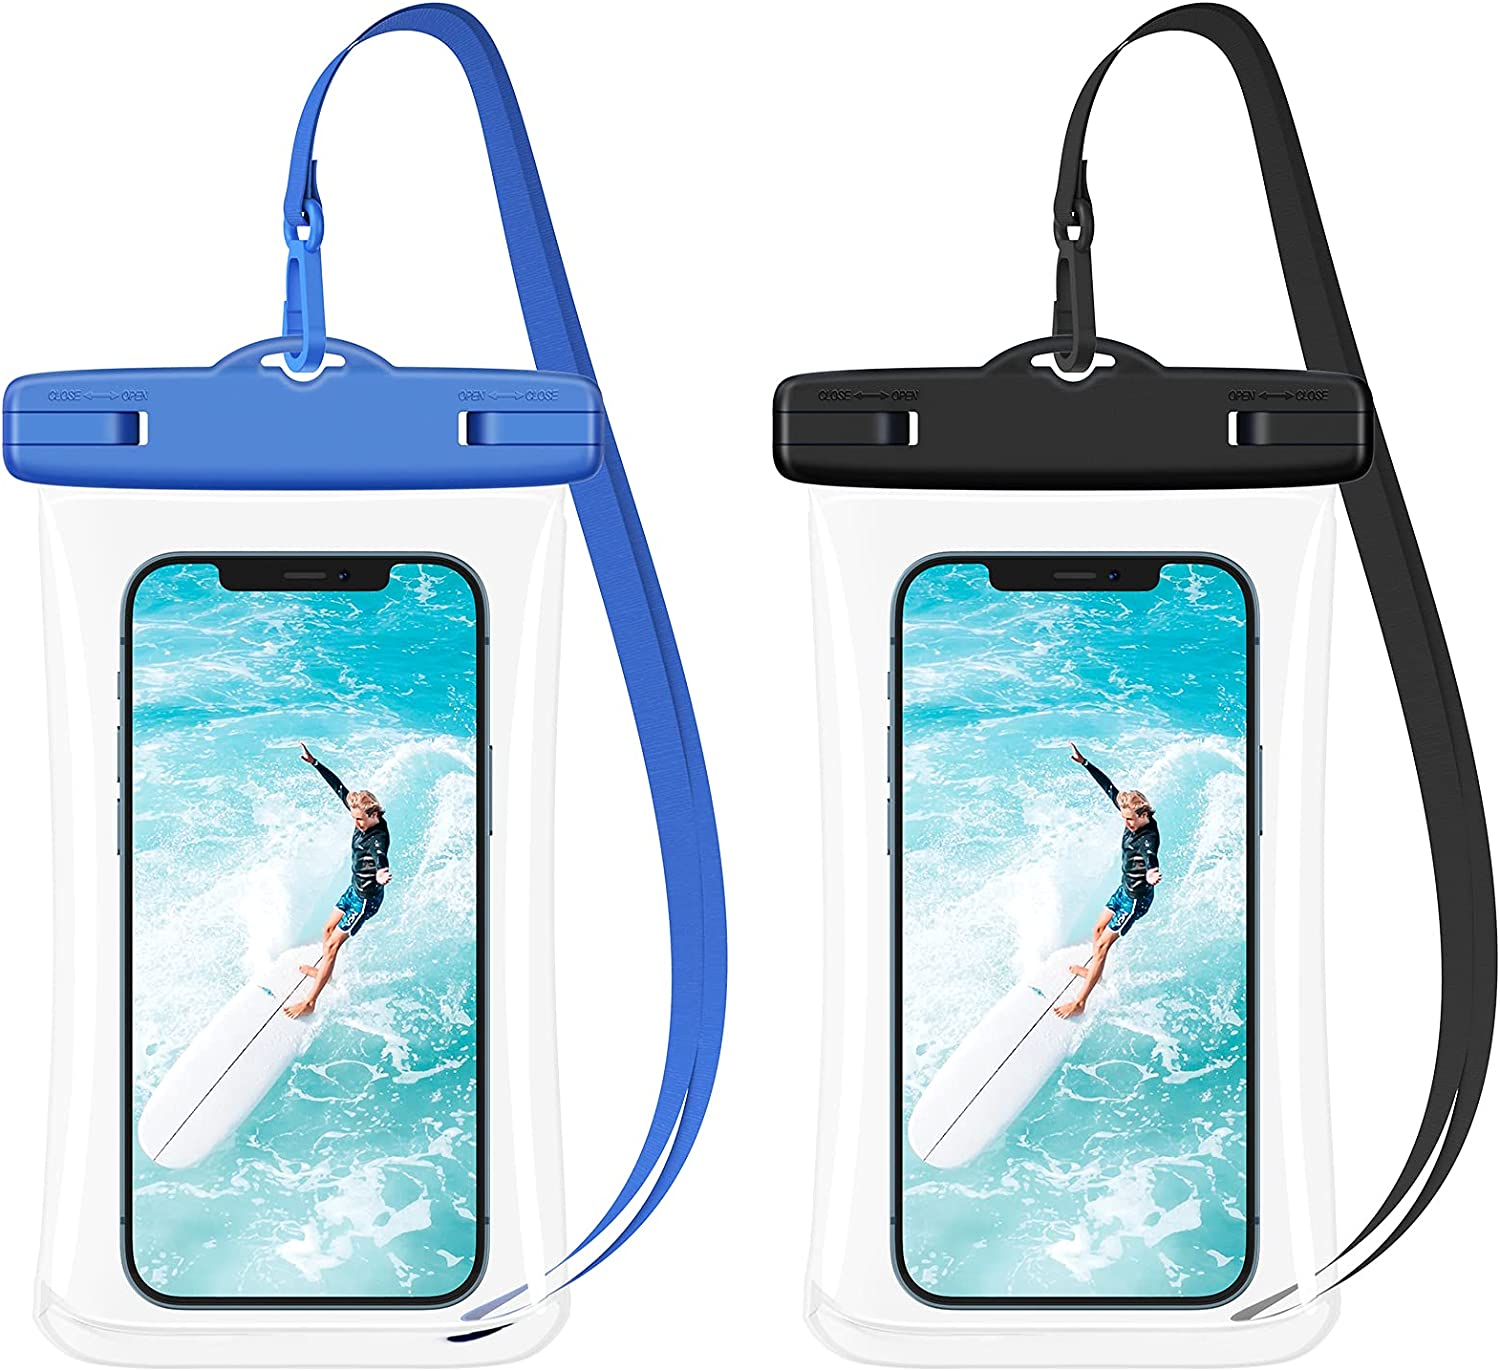 Ruky Universal Waterproof Phone Case, [2 Pack] Phone Dry Bag with Lanyard for iPhone 12 Pro Max 11 Pro Max Xs Max XR XS 8 7 6 Plus SE 2020, Galaxy S21 S20 Ultra Note Pixel OnePlus up to 7